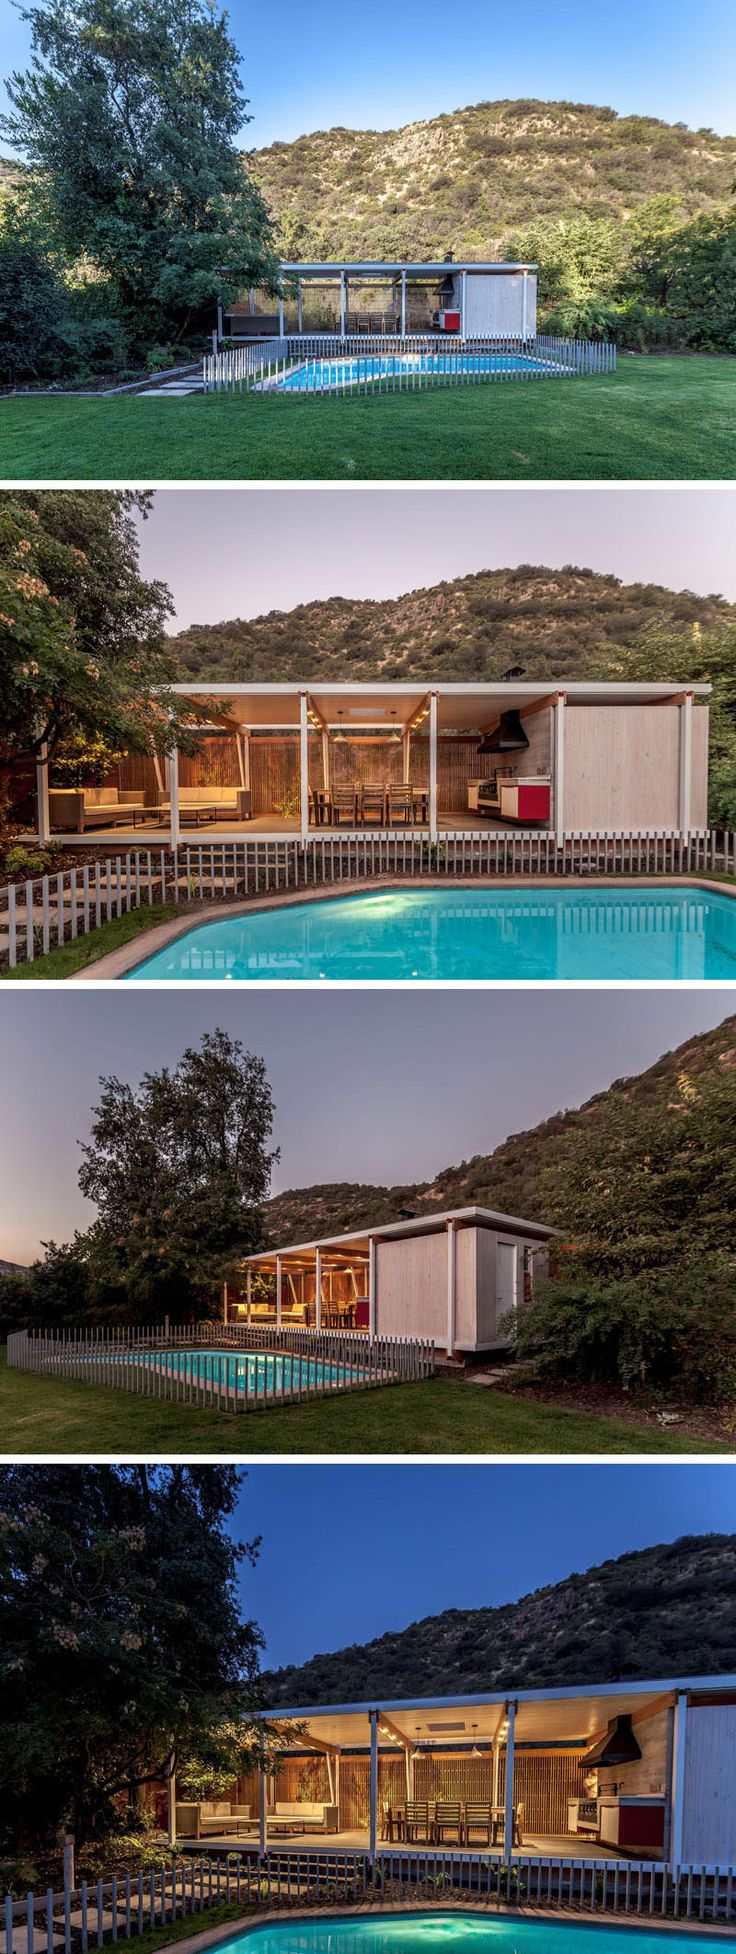 This modern pool house sits next to a swimming pool and includes a covered outdoor living room and dining area, as well as a BBQ, a kitchenette, a wine cellar and a bathroom. A wooden screen provides privacy without blocking the sunlight.